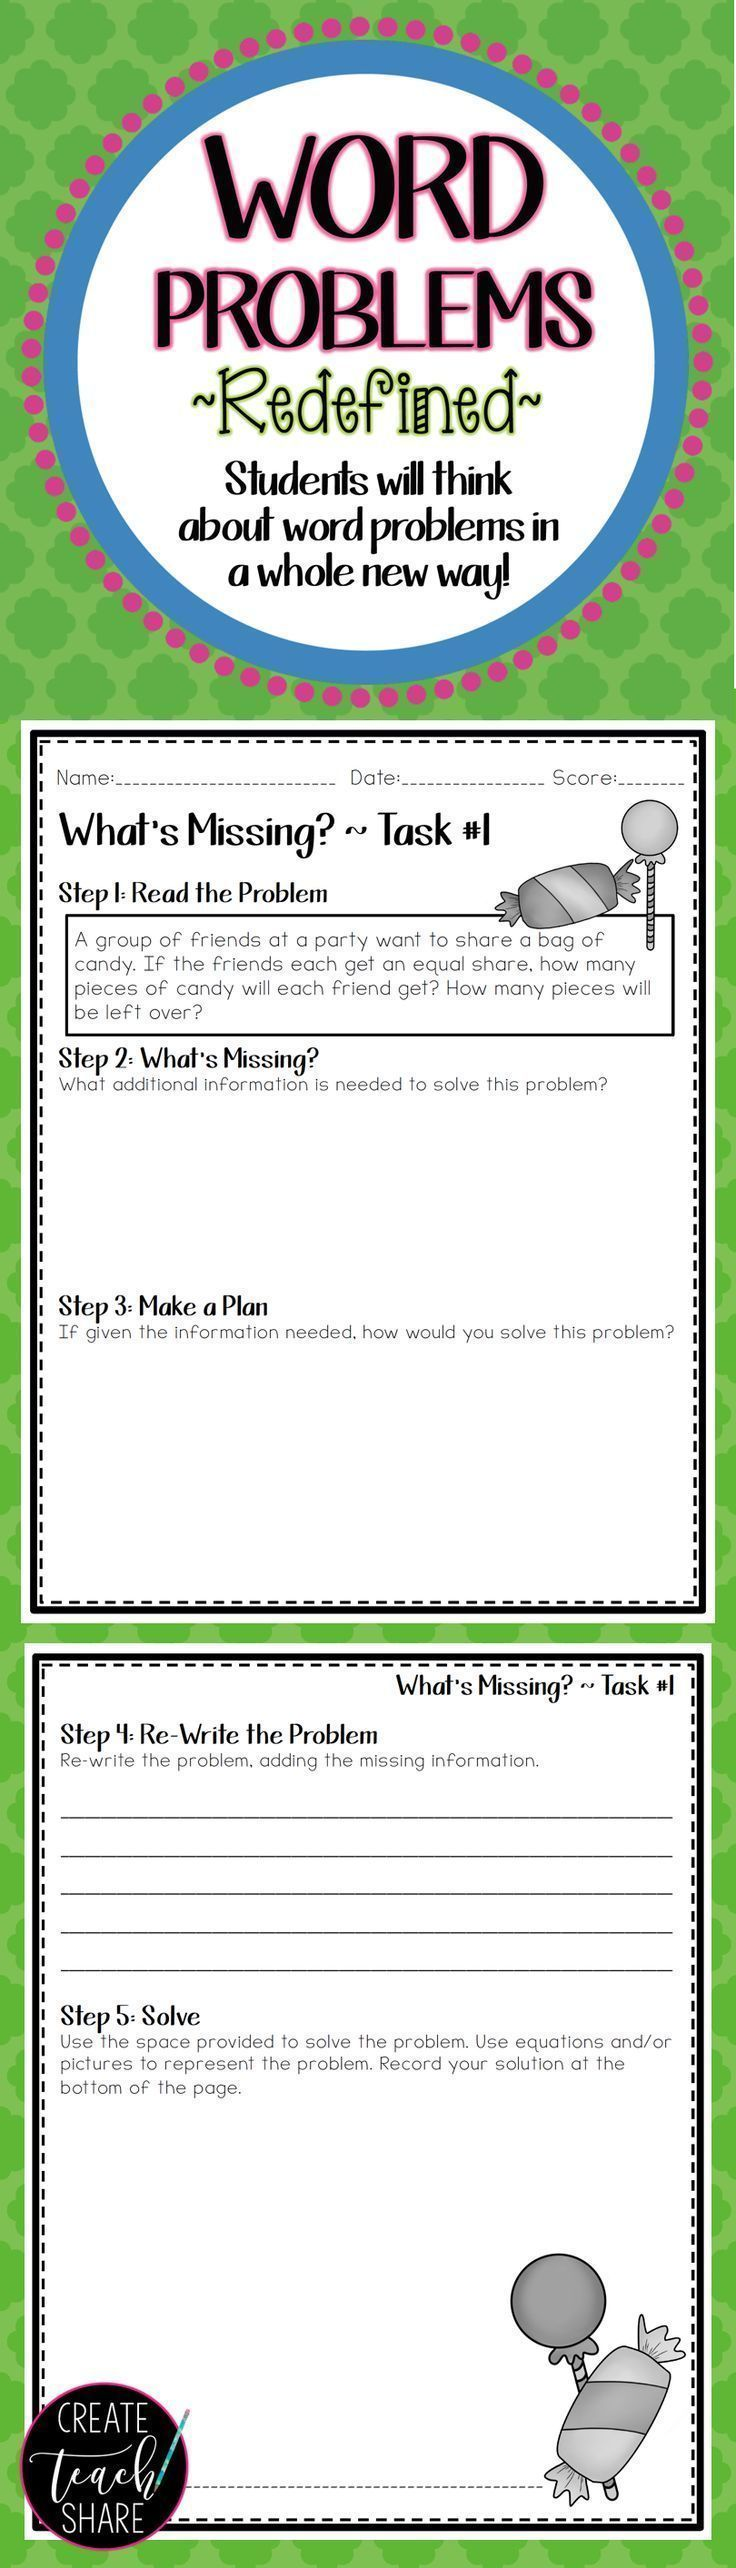 best ideas about math problems math problem i was looking for strategies to increase student understanding of word problems this resource has